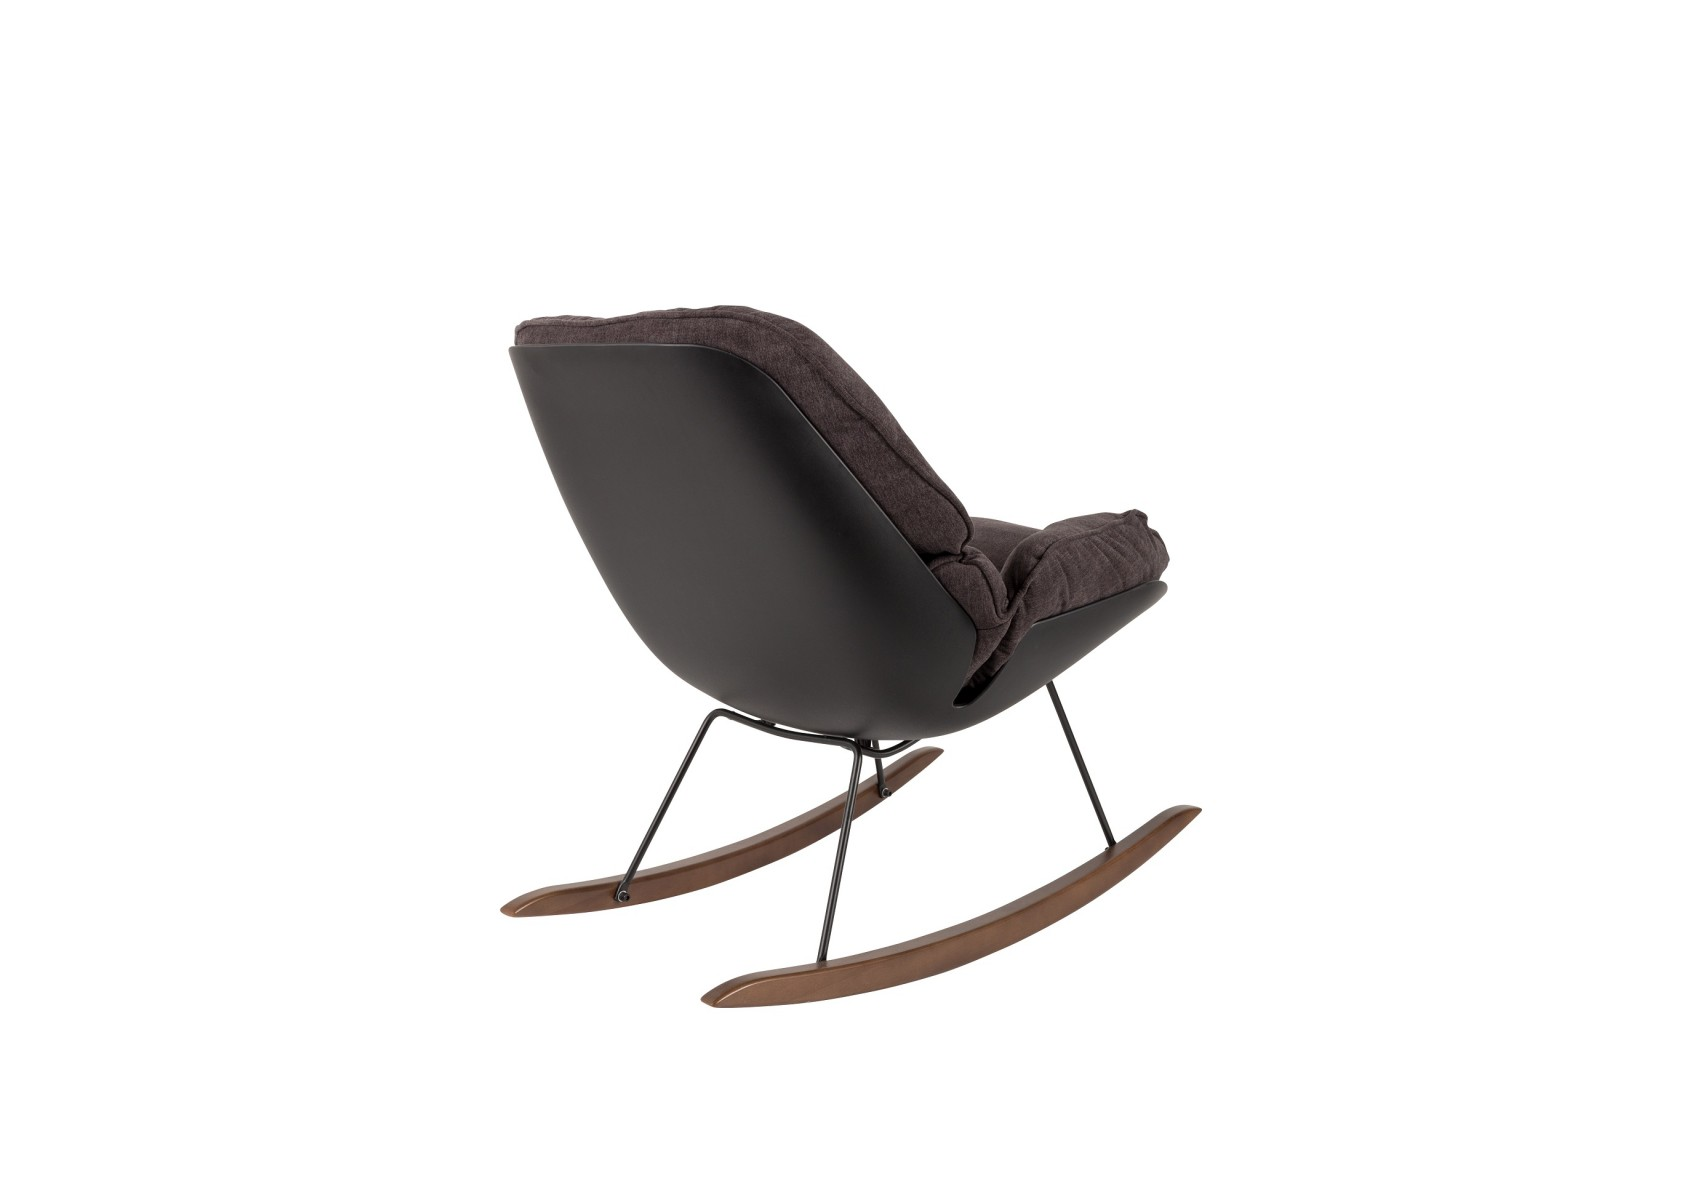 chaise design bascule gallery of chaise a bascule pas cher rocking chaise mid century modern. Black Bedroom Furniture Sets. Home Design Ideas